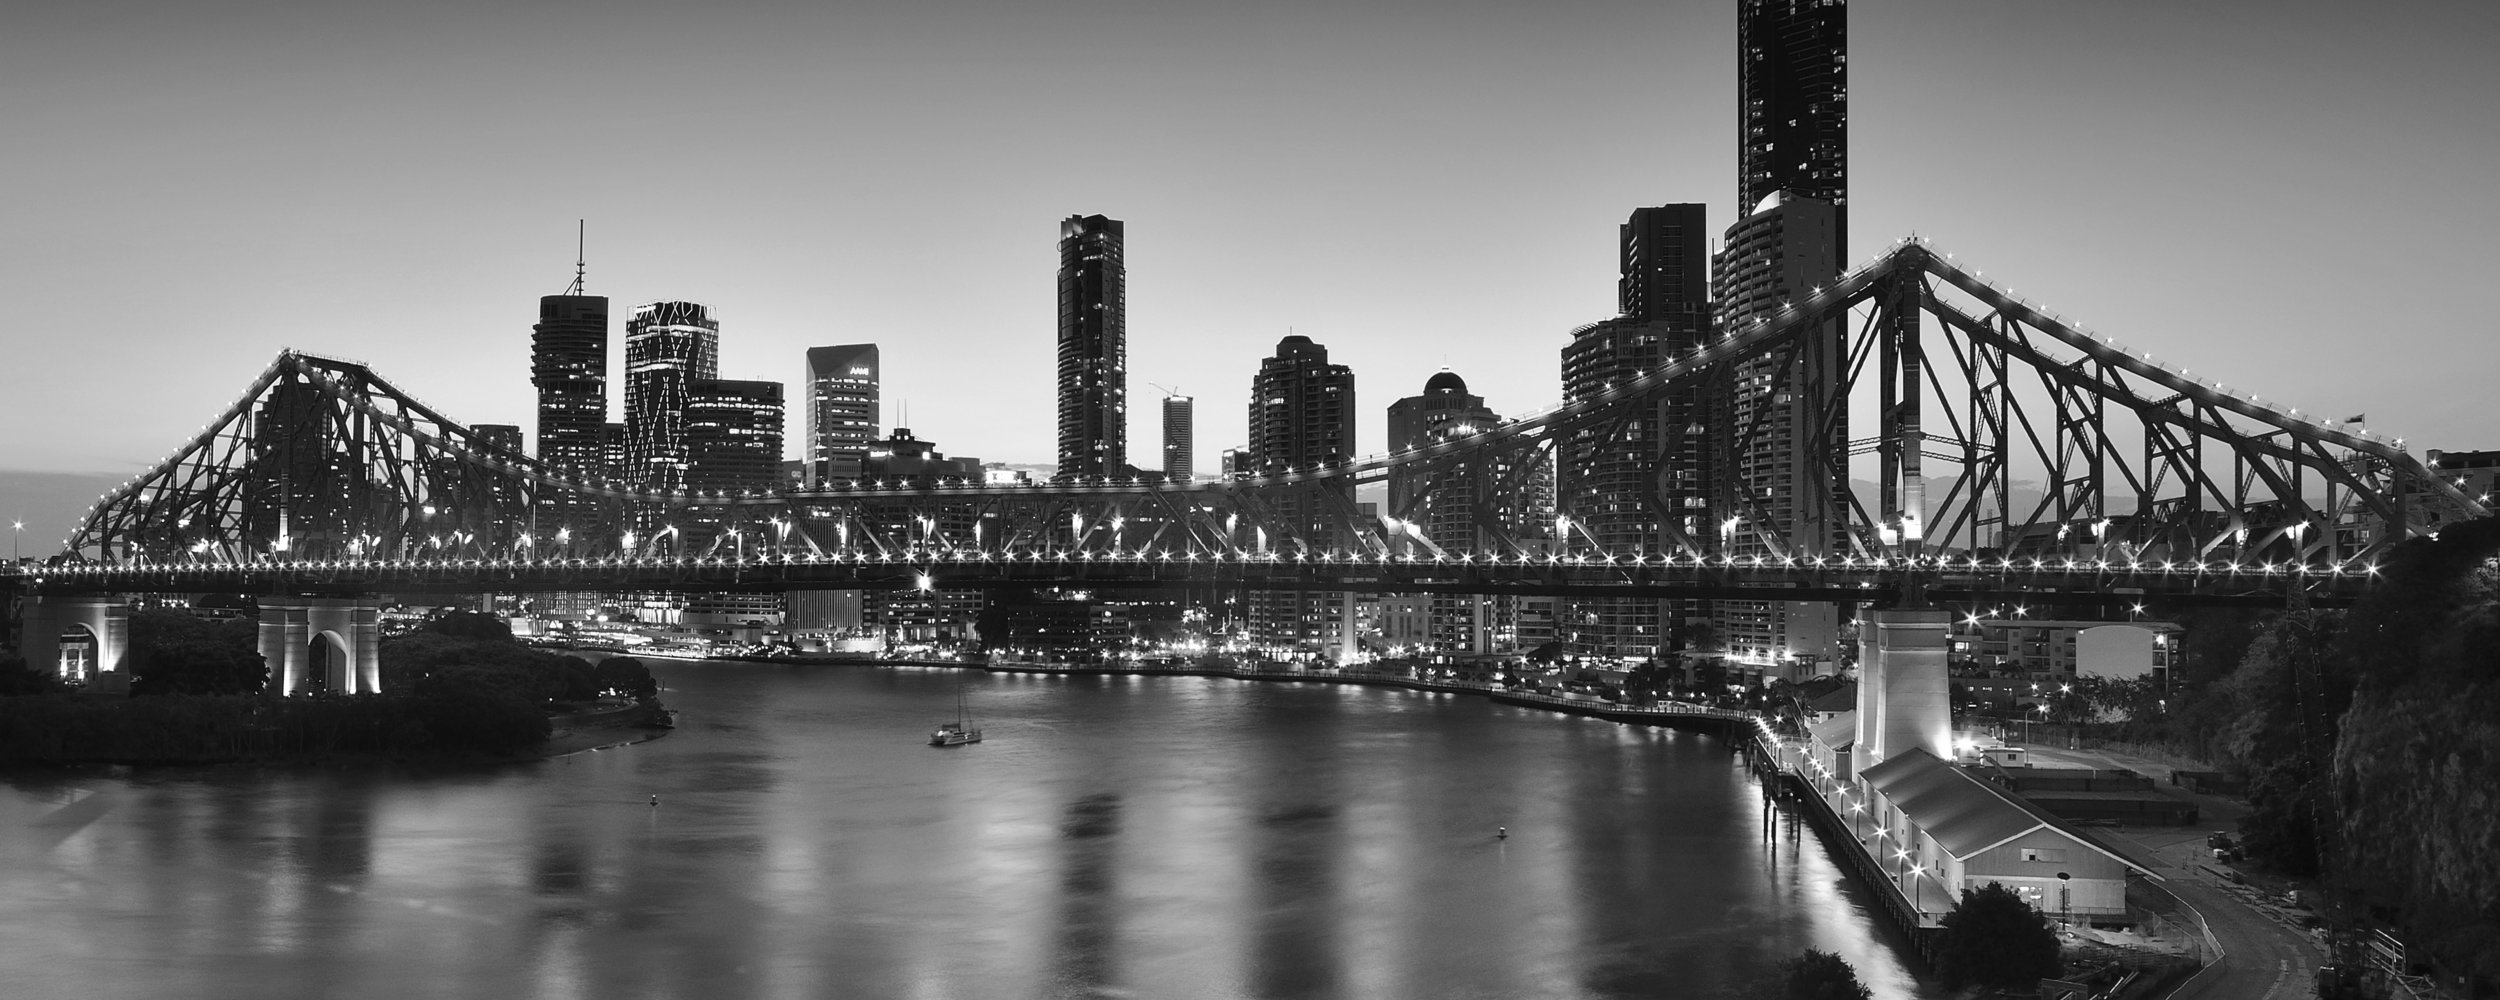 - Ronan Fox is a commercial law firm situated in the heart of Brisbane's CBD. We have specialised knowledge and experience in providing professional and legal advice and financial planning.